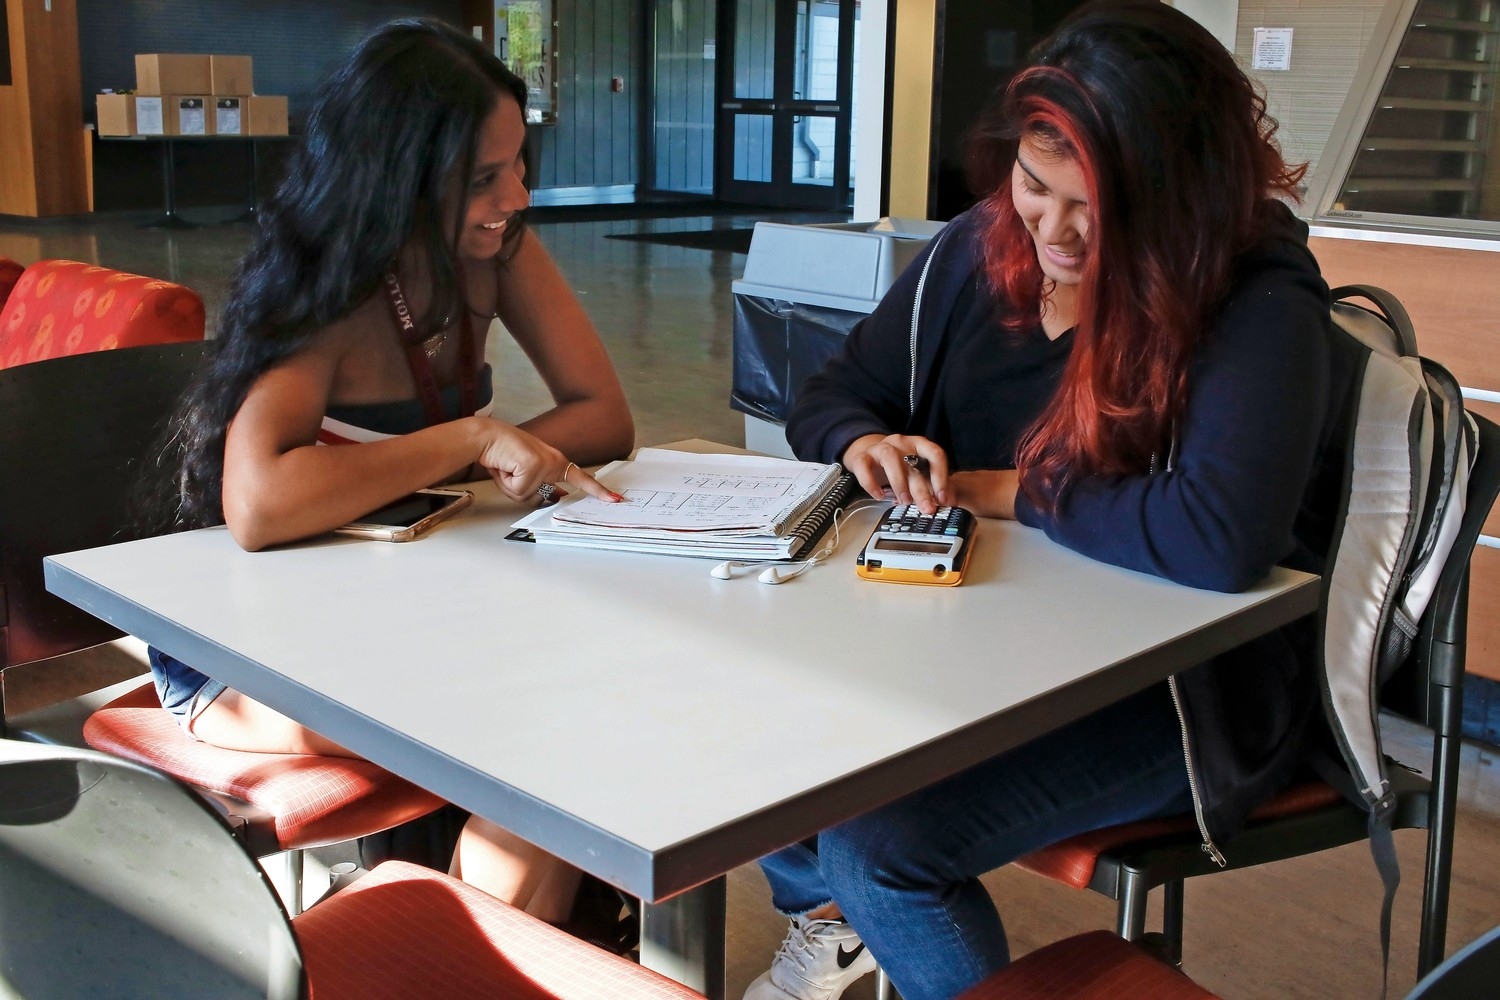 Freshmen Britney Singh, left, and Samantha Adams, of New Hyde Park, chose Molloy College for its inviting feel and for its double major offer, respectively. Singh is majoring in psychology and Adams is double majoring in psychology and criminal justice.